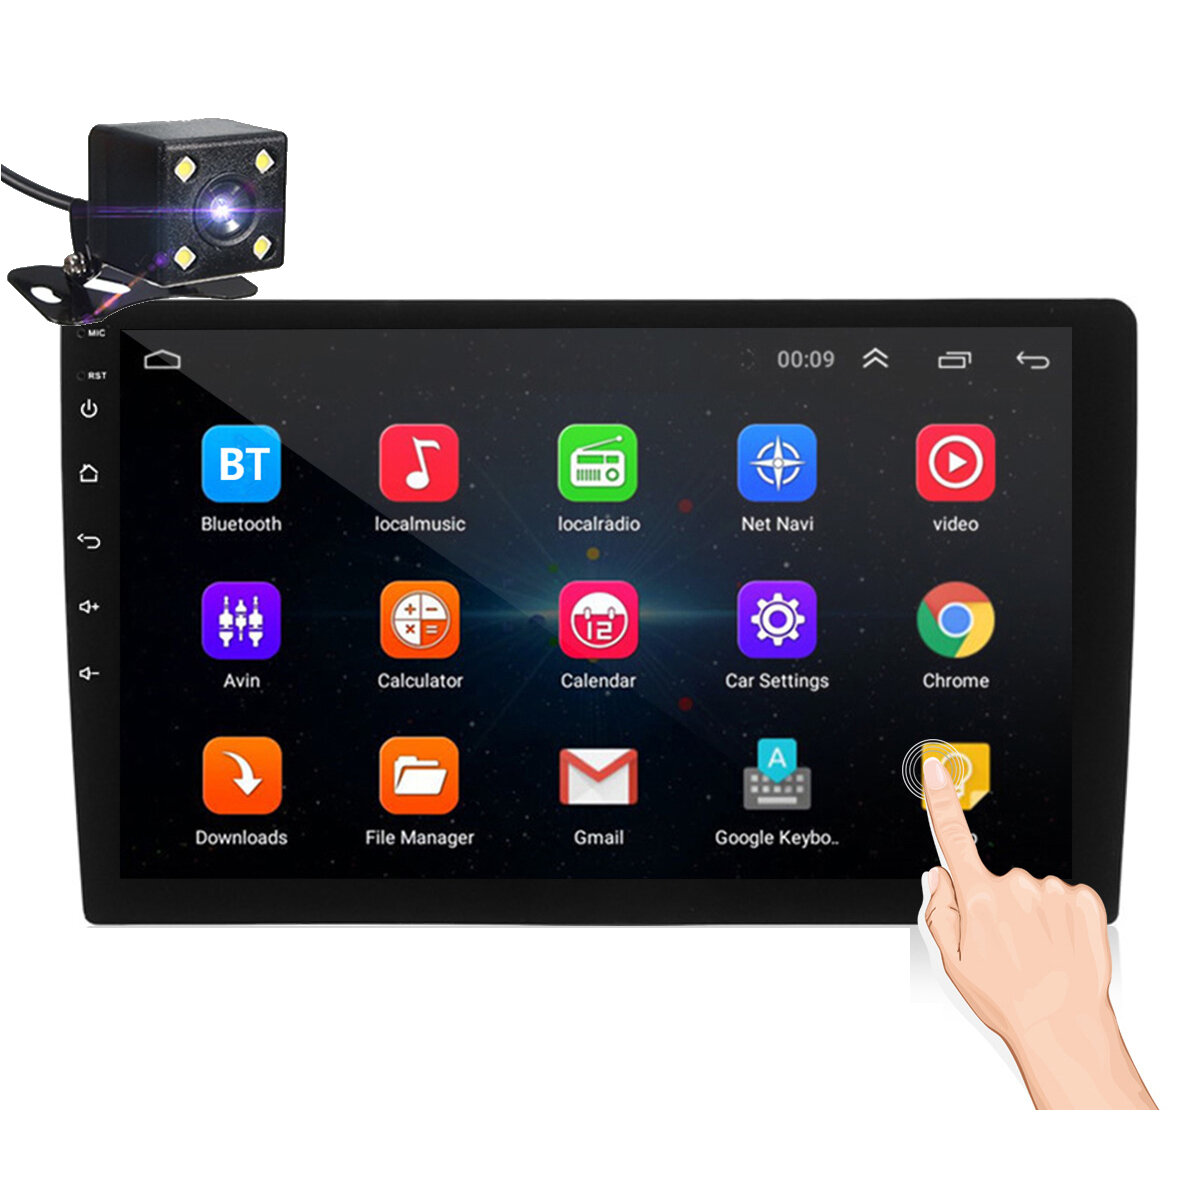 iMars 10.1 Inch 2Din Android 8.1 Car Stereo Radio 1+16G IPS 2.5D Touch Screen MP5 Player GPS WIFI FM with Backup Camera